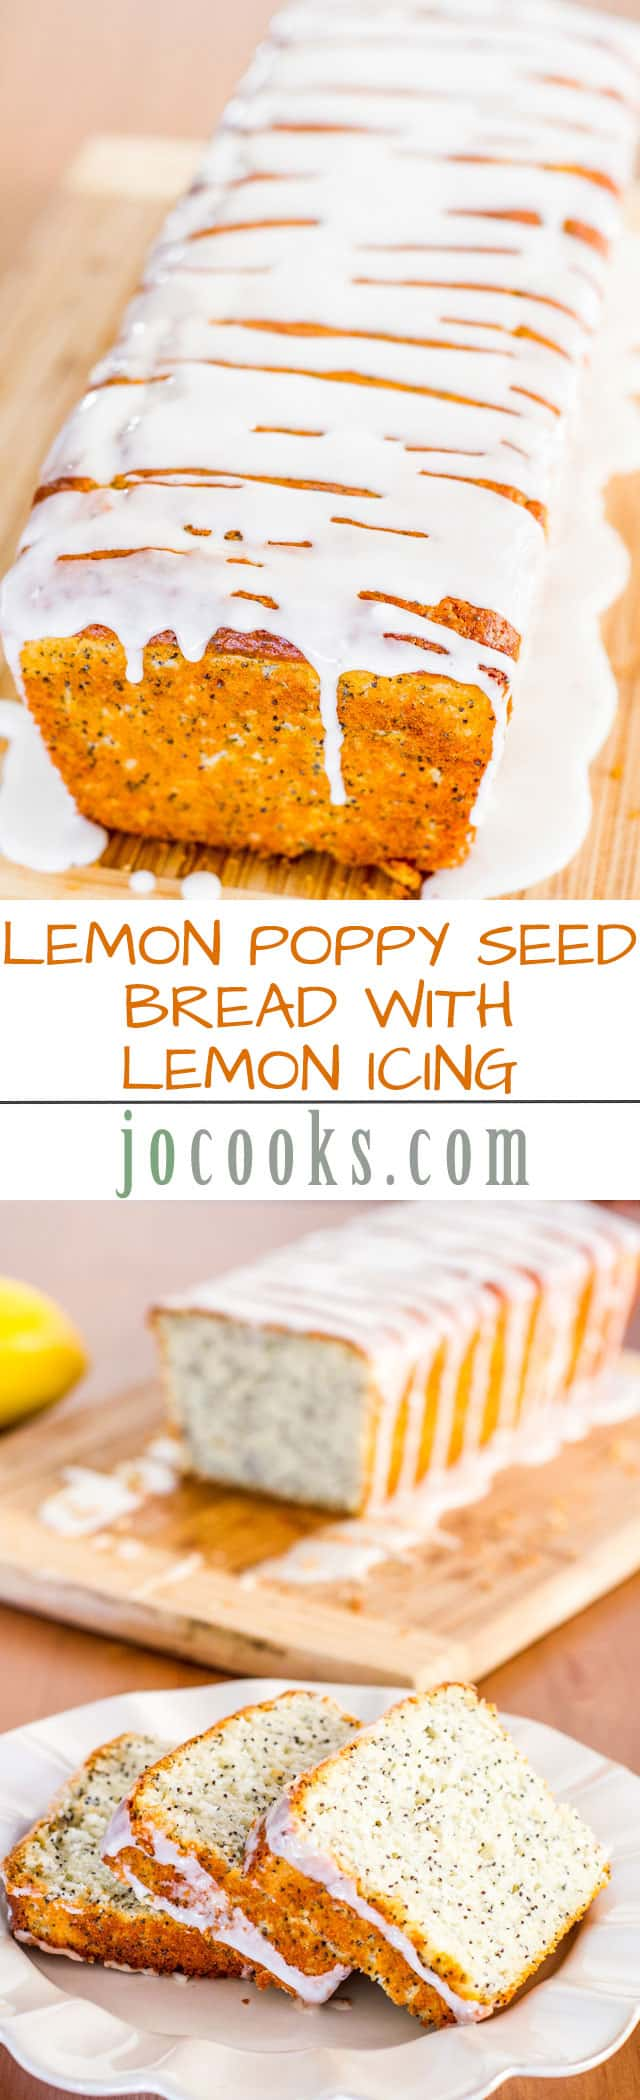 lemon-poppy-seed-bread-COLLAGE